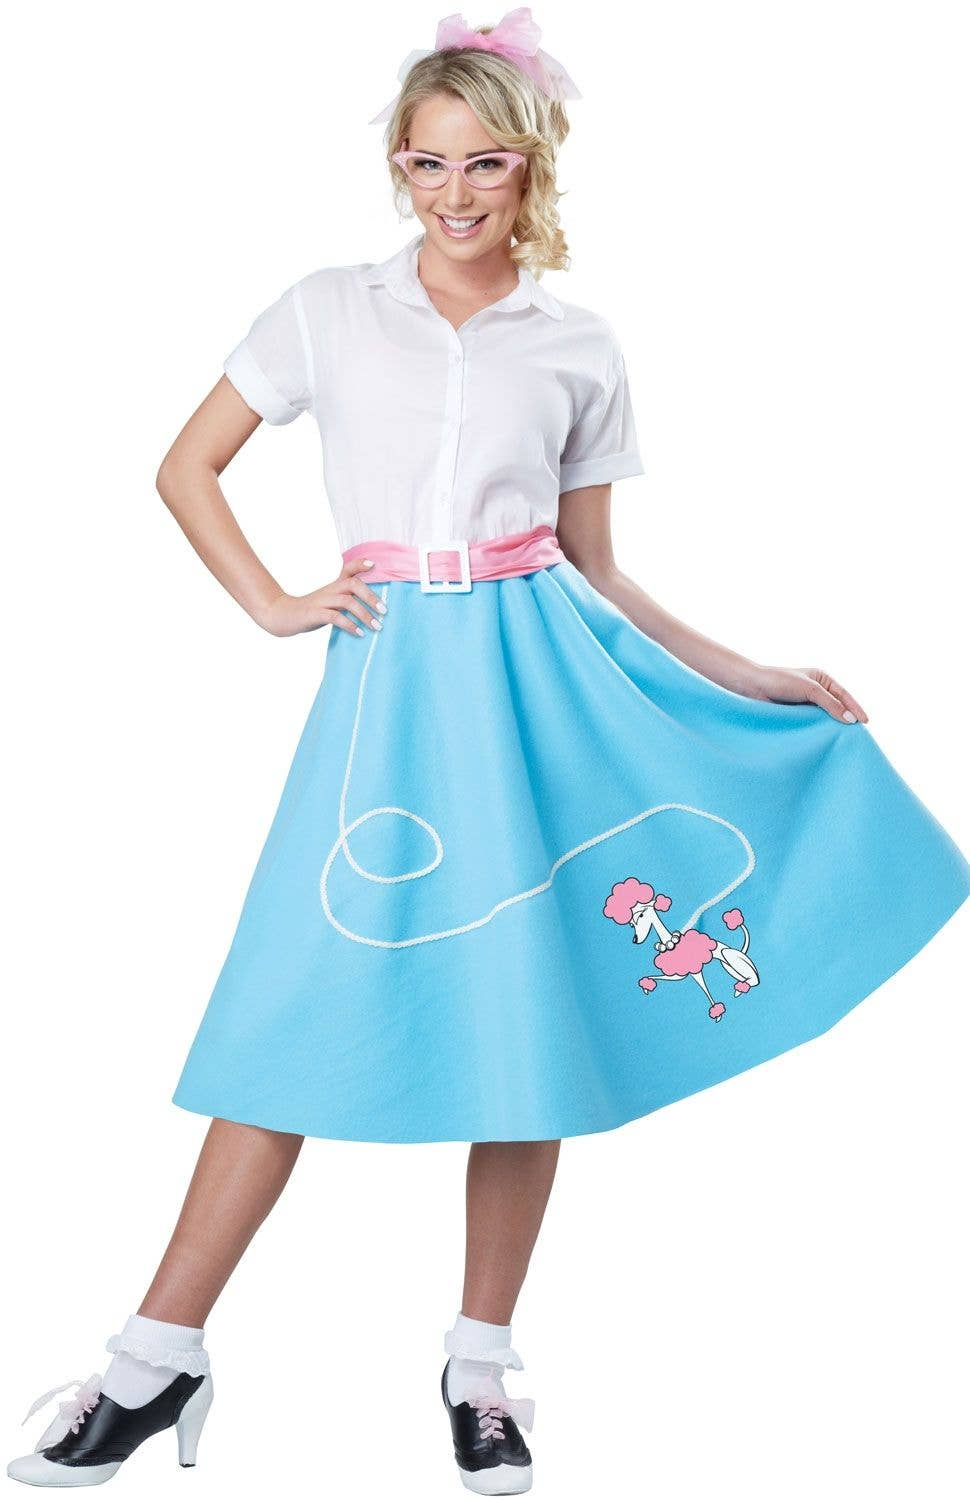 f5369634dc7 Blue and White 50s Rockabilly Women s Costume Main Image